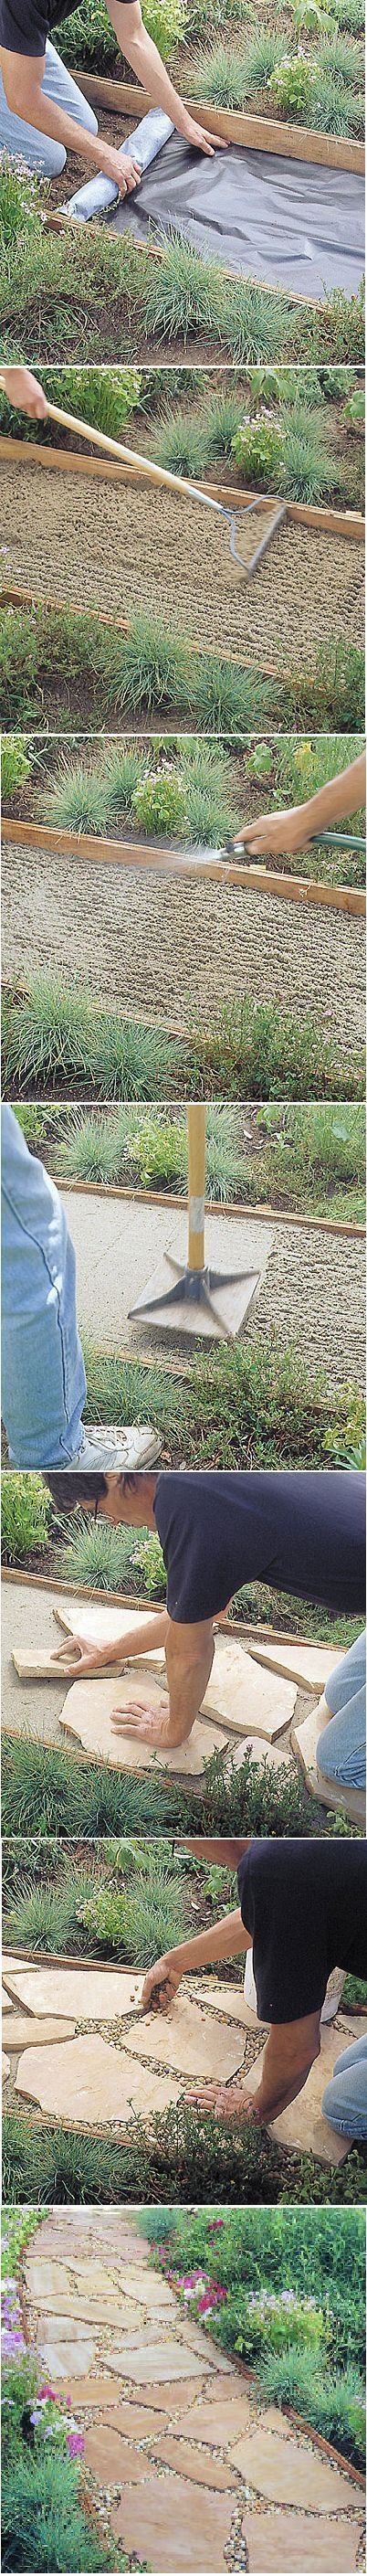 Step 1Install benderboard edging first, then put down landscape fabric (available at nurseries) to prevent weeds. Secure fabric edges under the benderboard #backyardlandscapediytutorials